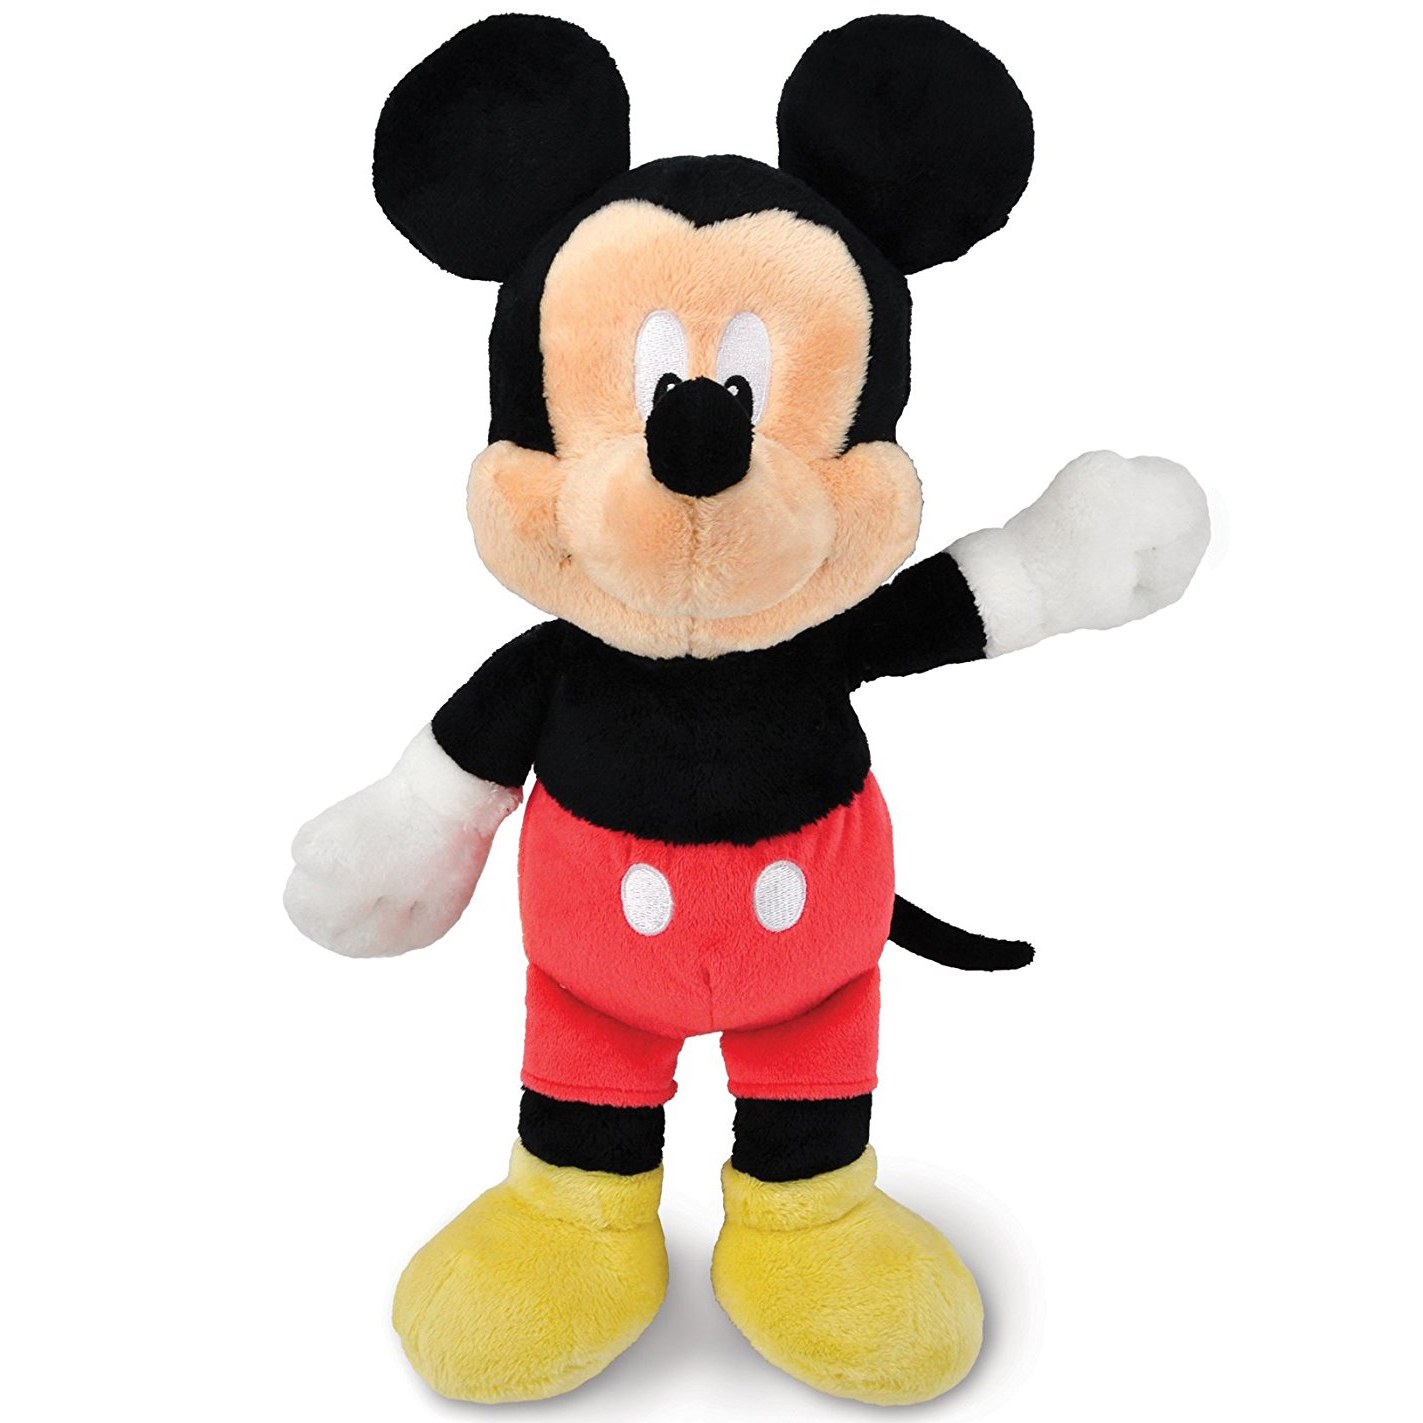 Disney Plush, Mickey Mouse